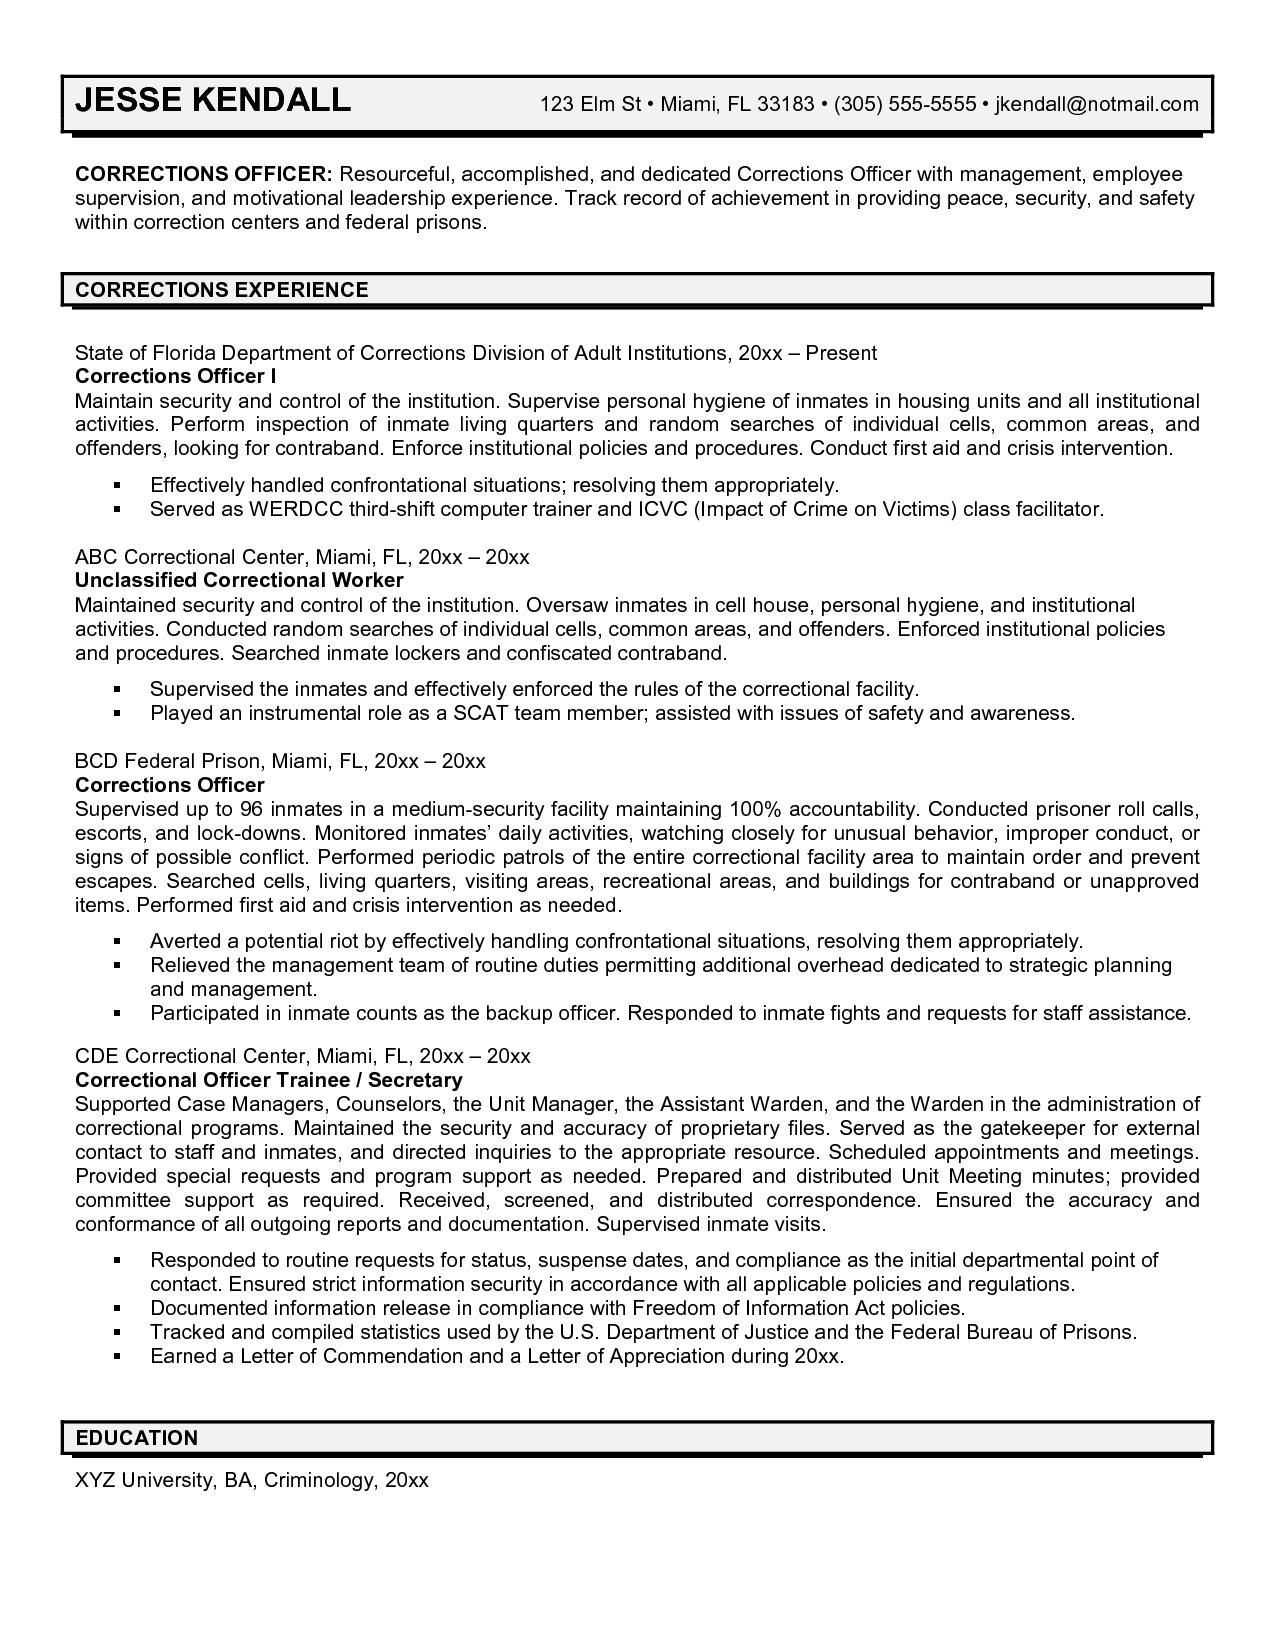 Pin by John Rone on Resume | Pinterest | Job resume format, Job ...